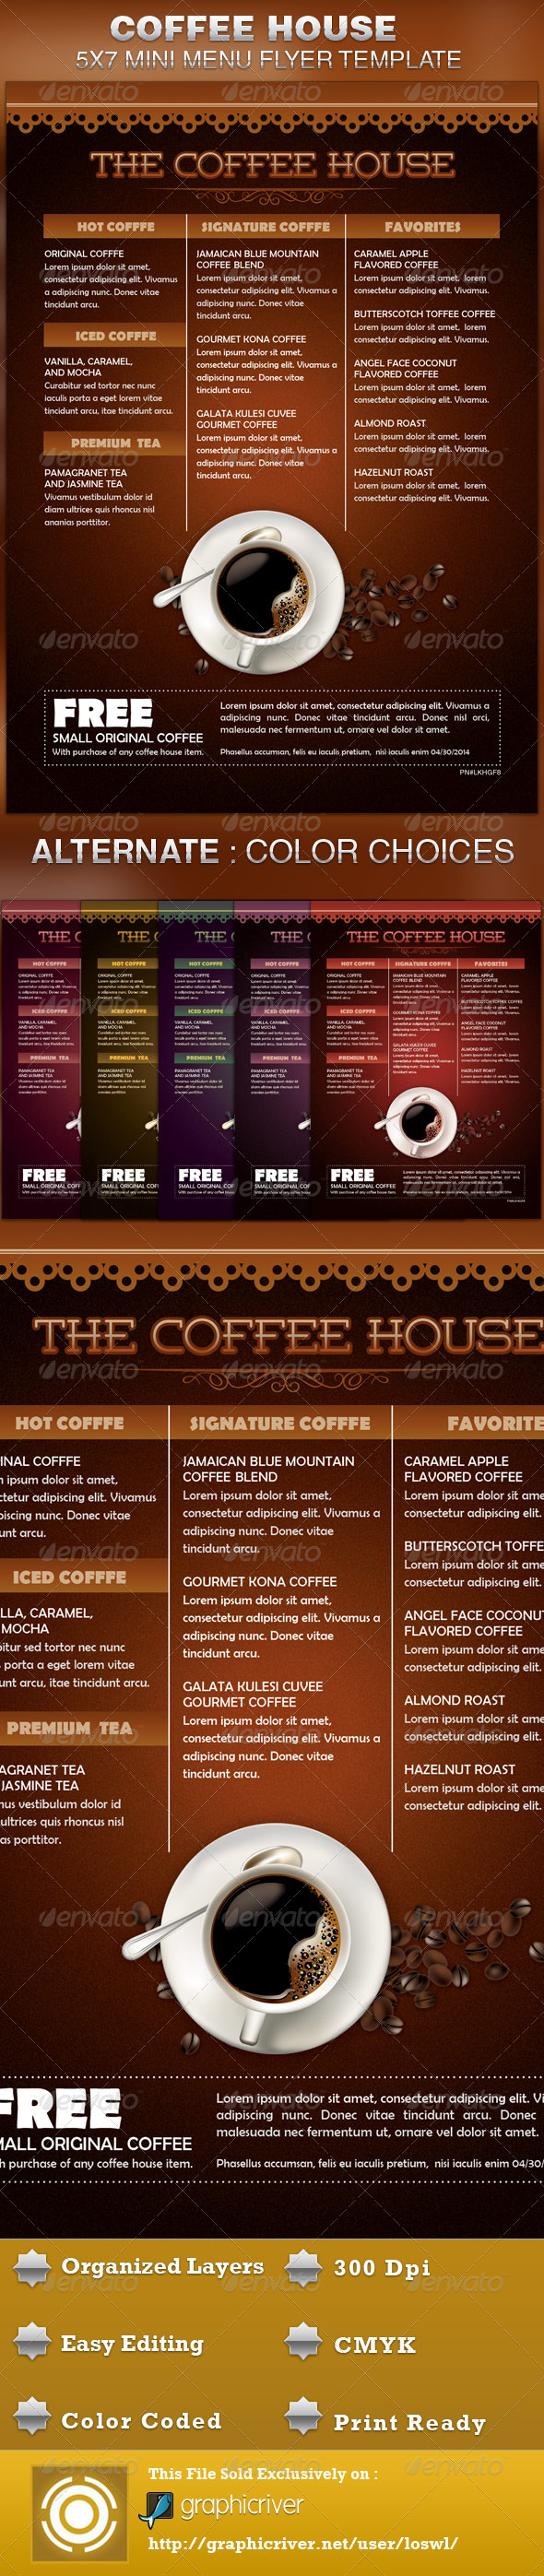 GraphicRiver Coffee House Mini Menu Flyer Template 4541760